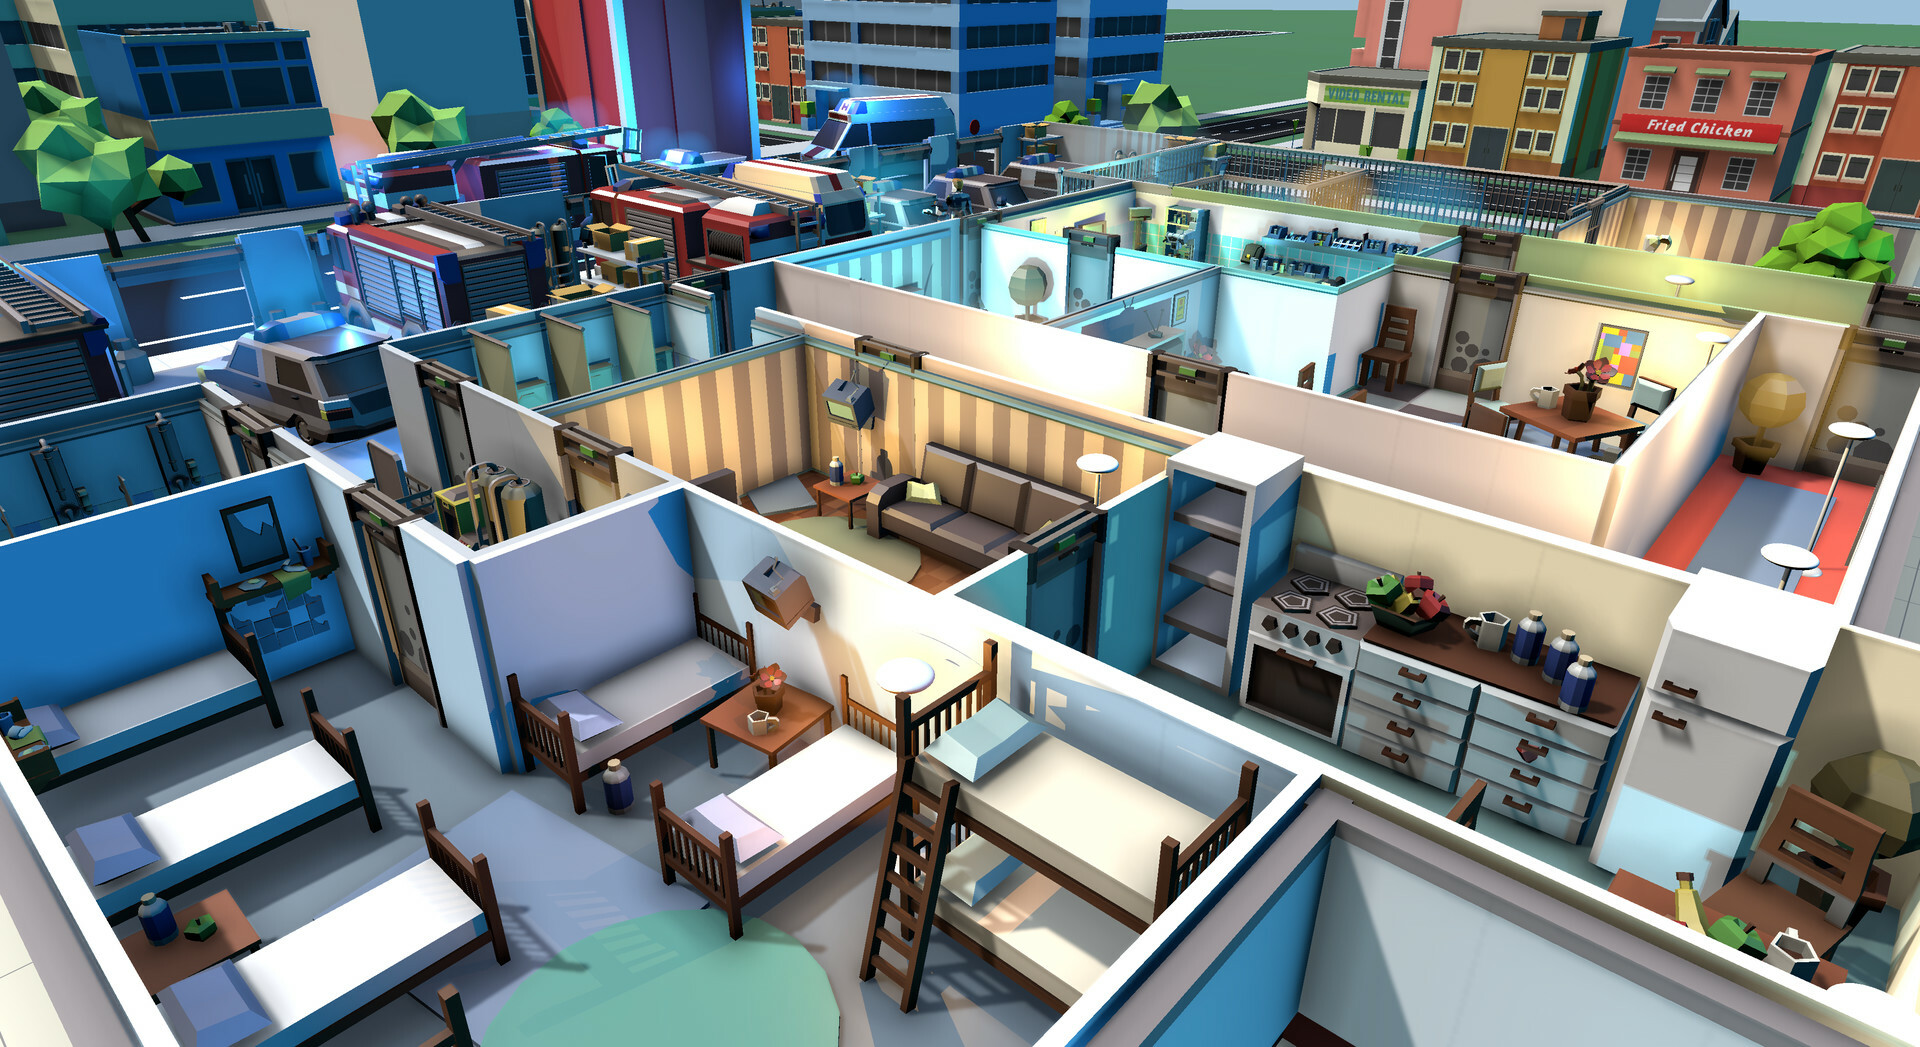 Rescue HQ - The Tycoon screenshot 2